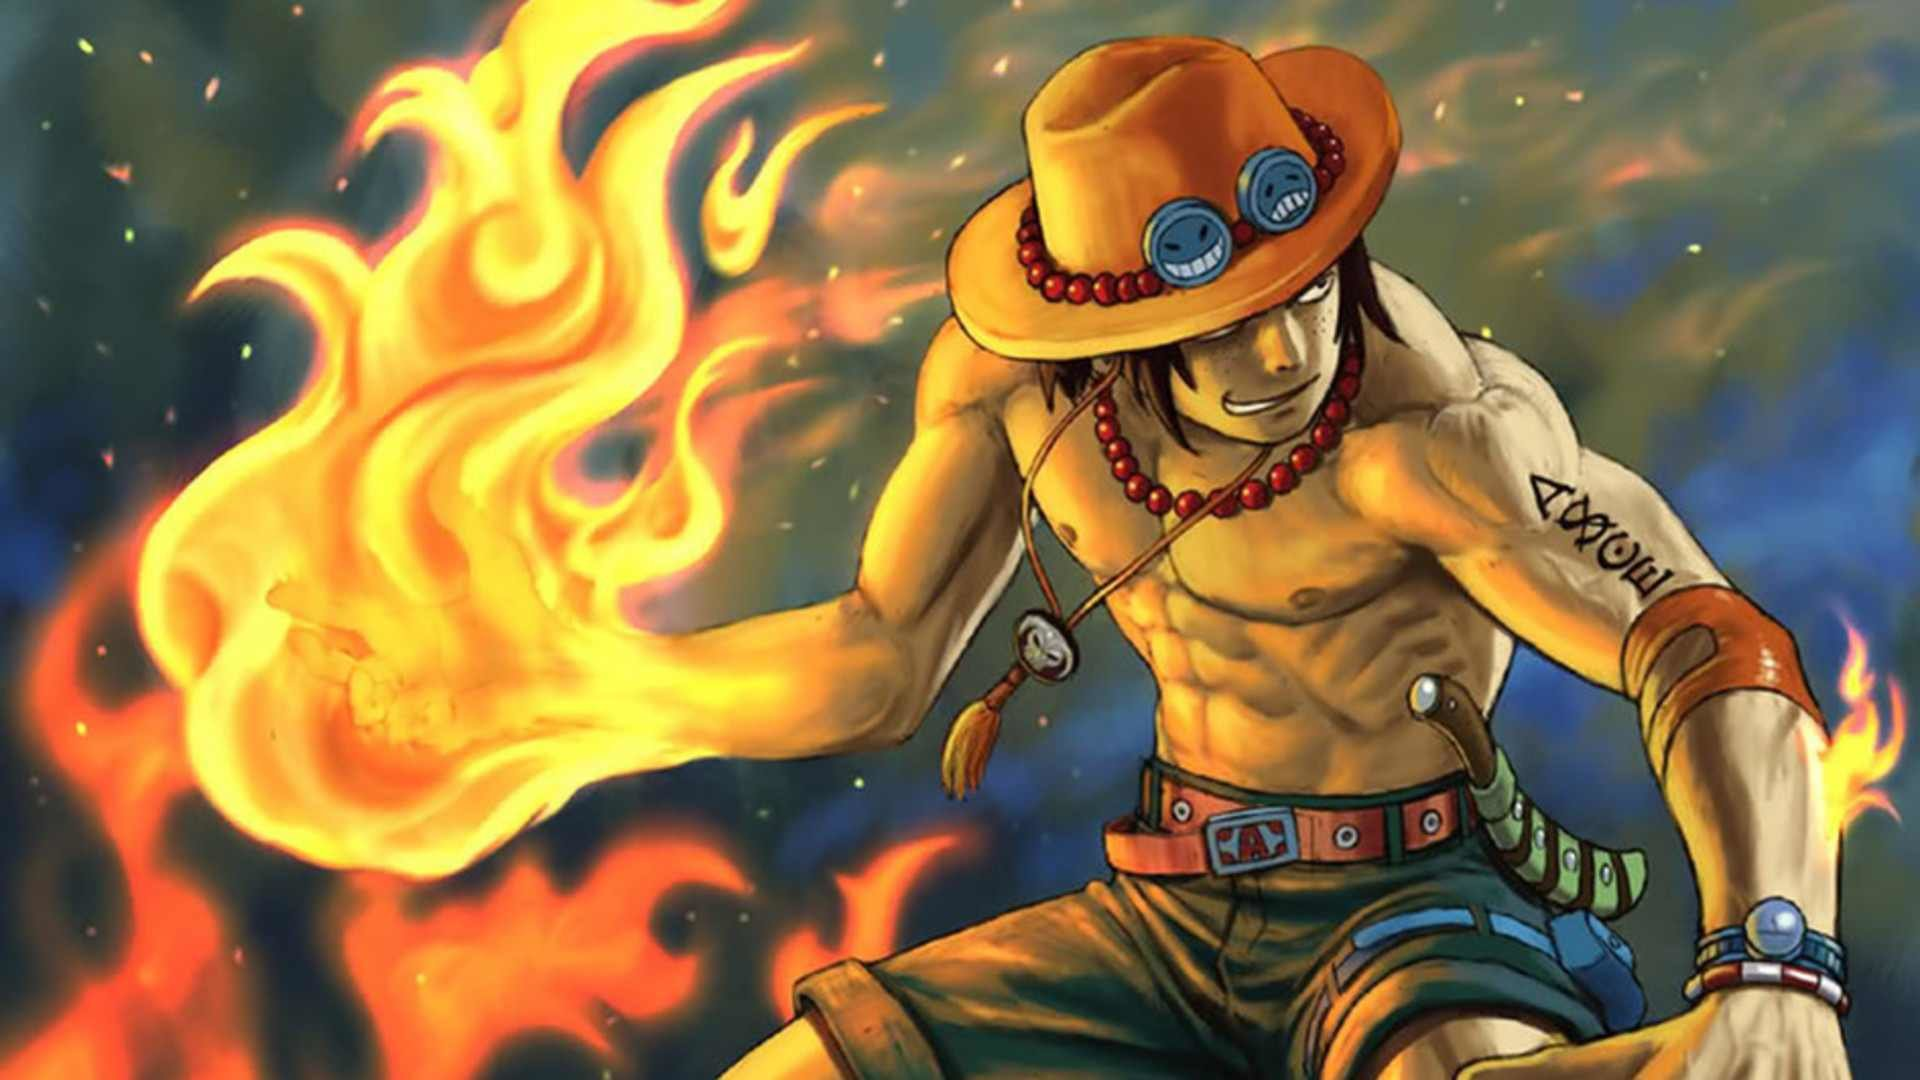 Awesome Portgas D. Ace free background ID:313955 for hd 1080p desktop